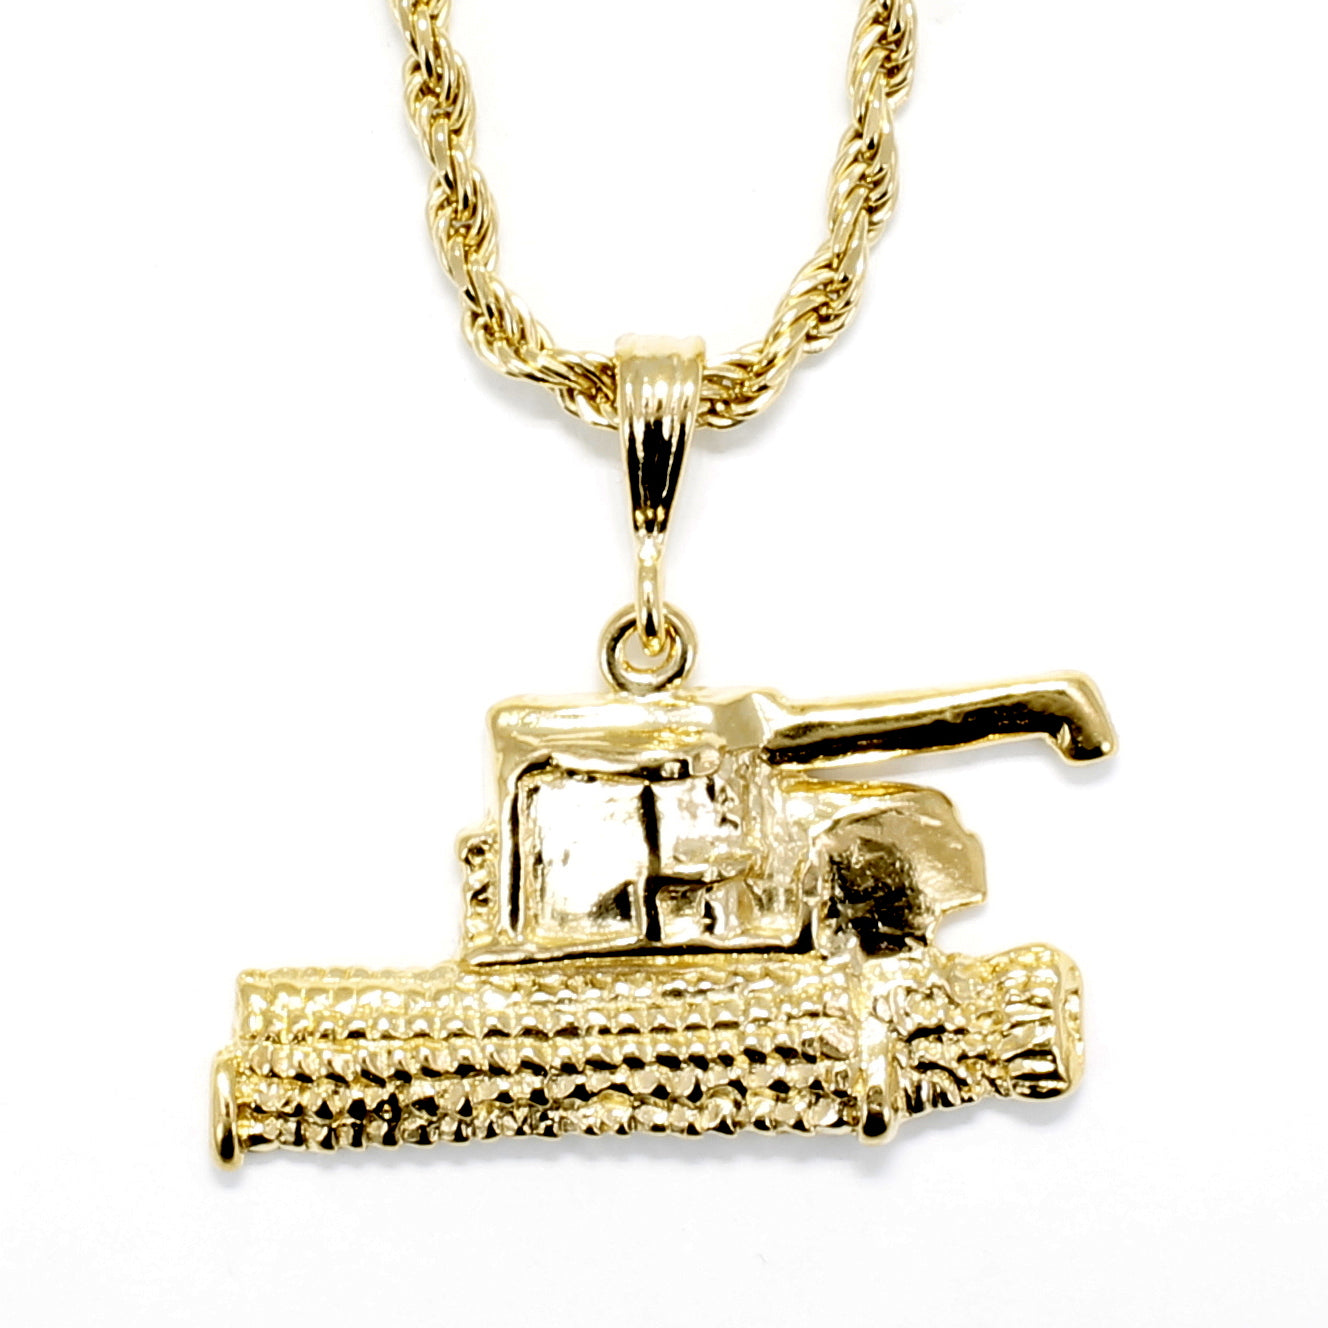 Combine Necklace In 14kt Gold Vermeil With Heavy Rope Chain For